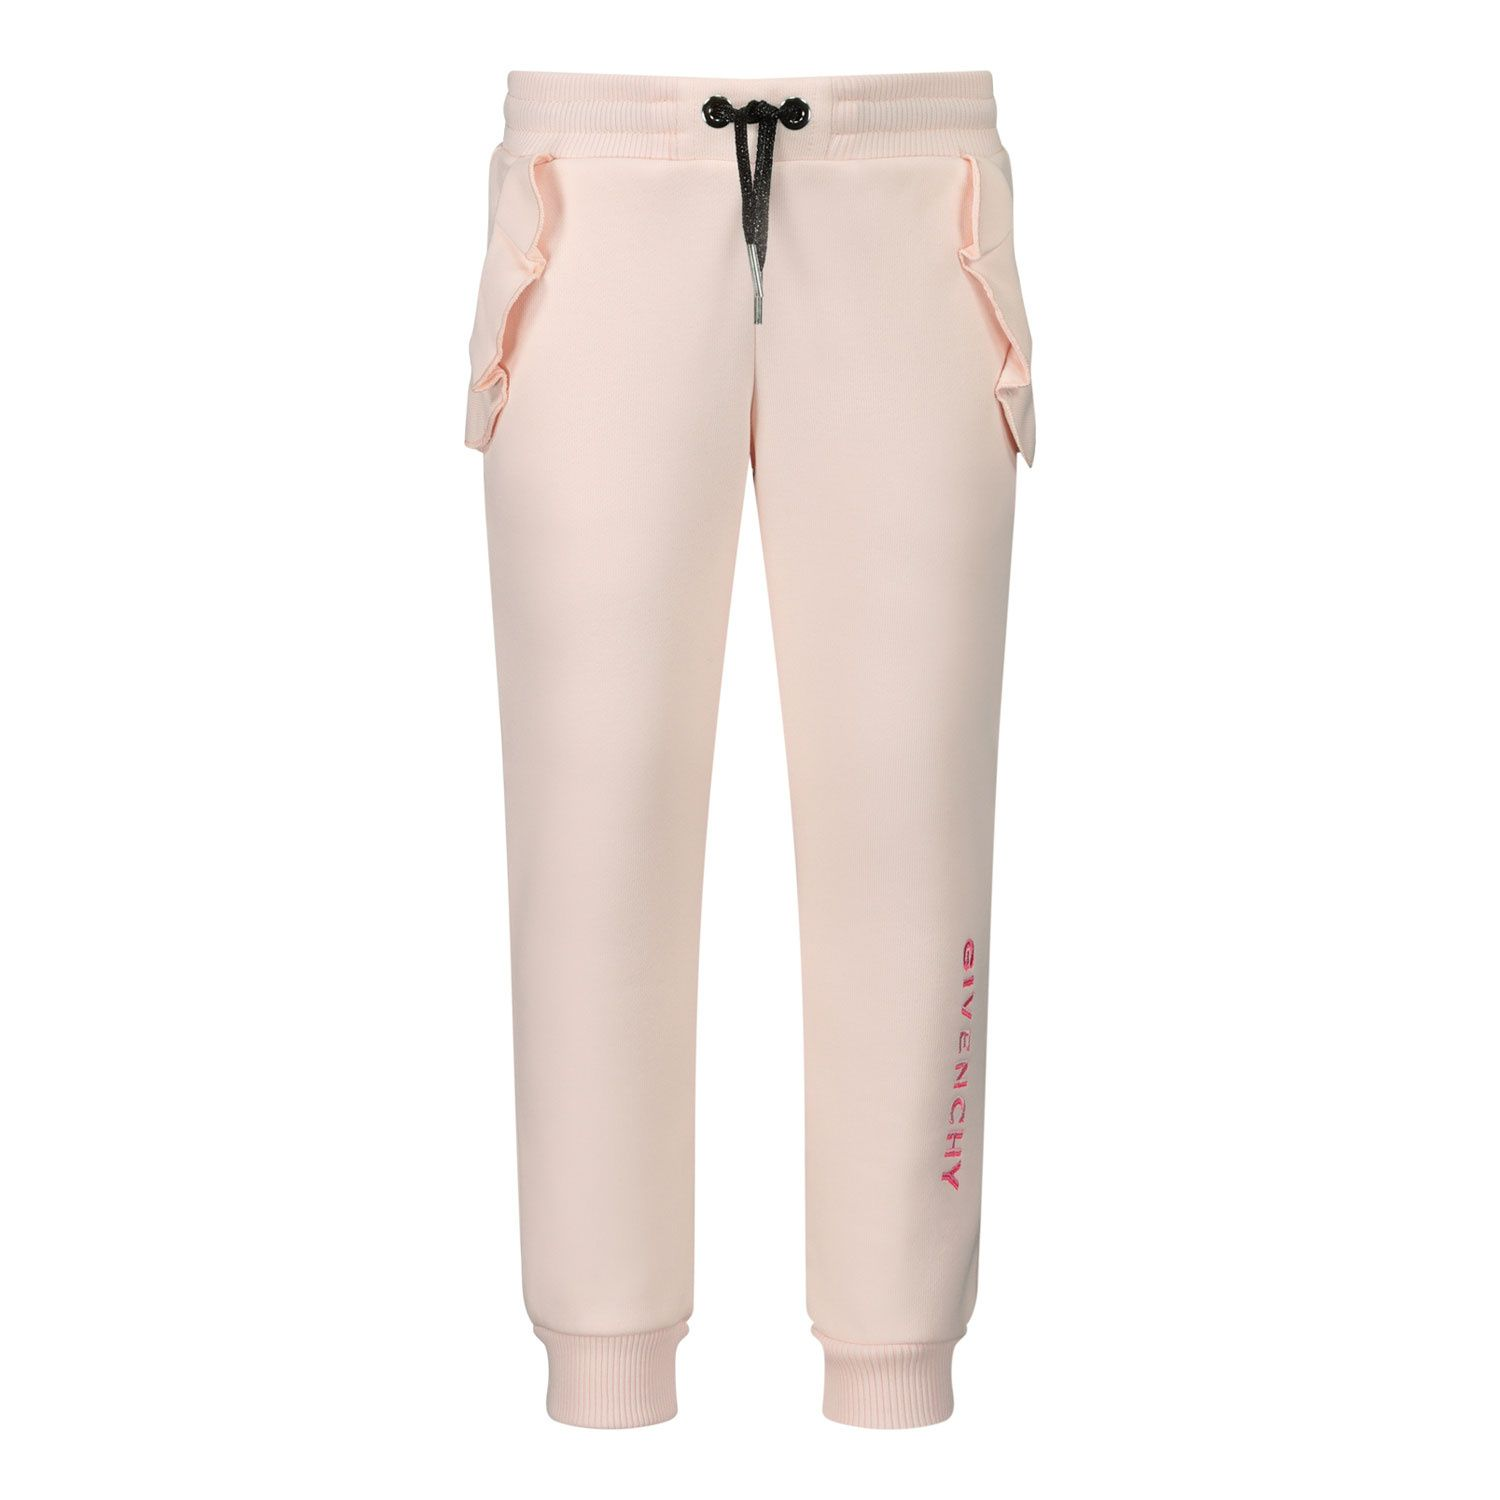 Picture of Givenchy H04089 baby pants light pink